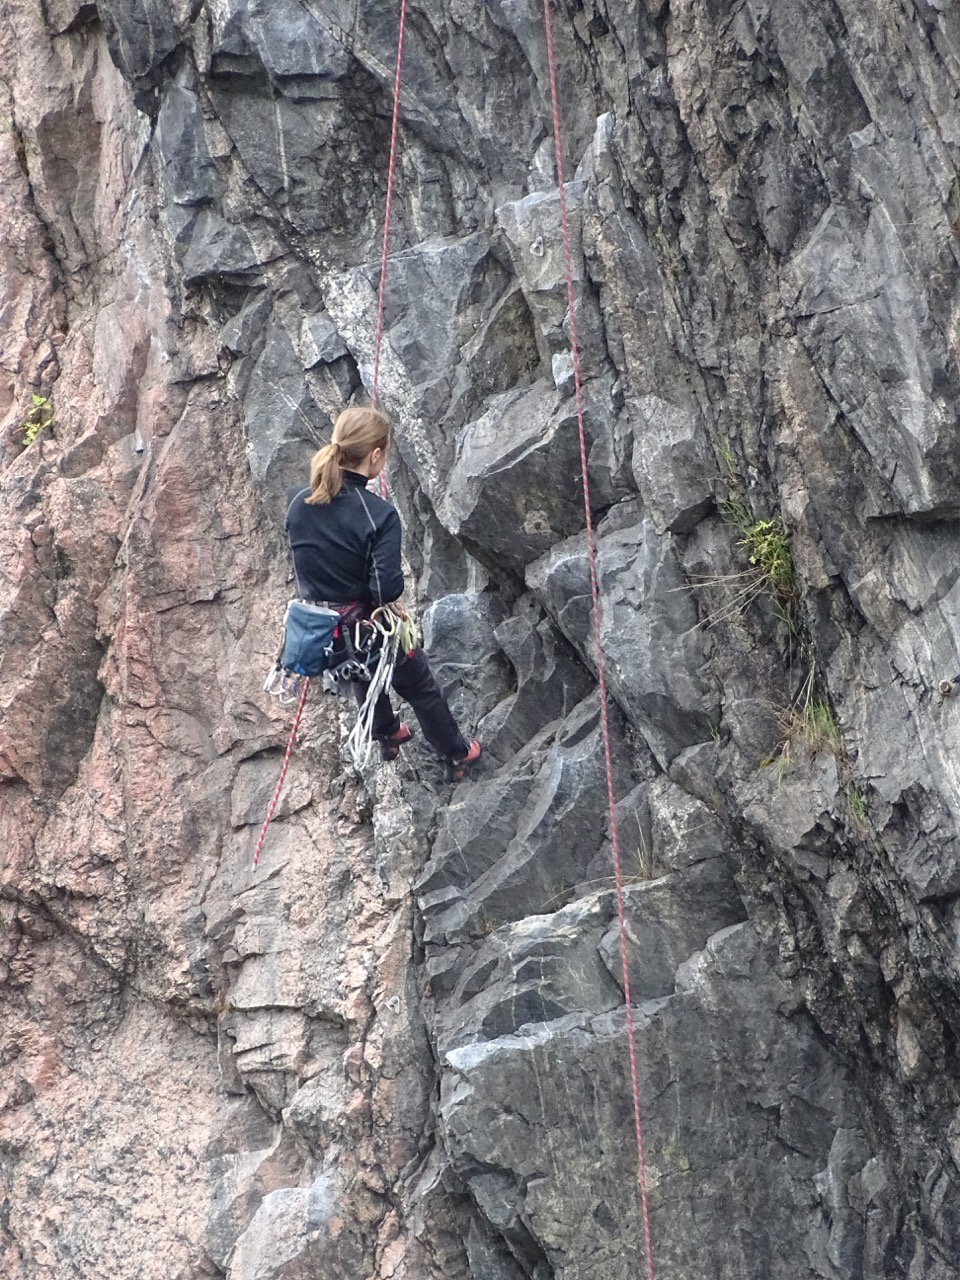 Rock climbing in Sodermalm